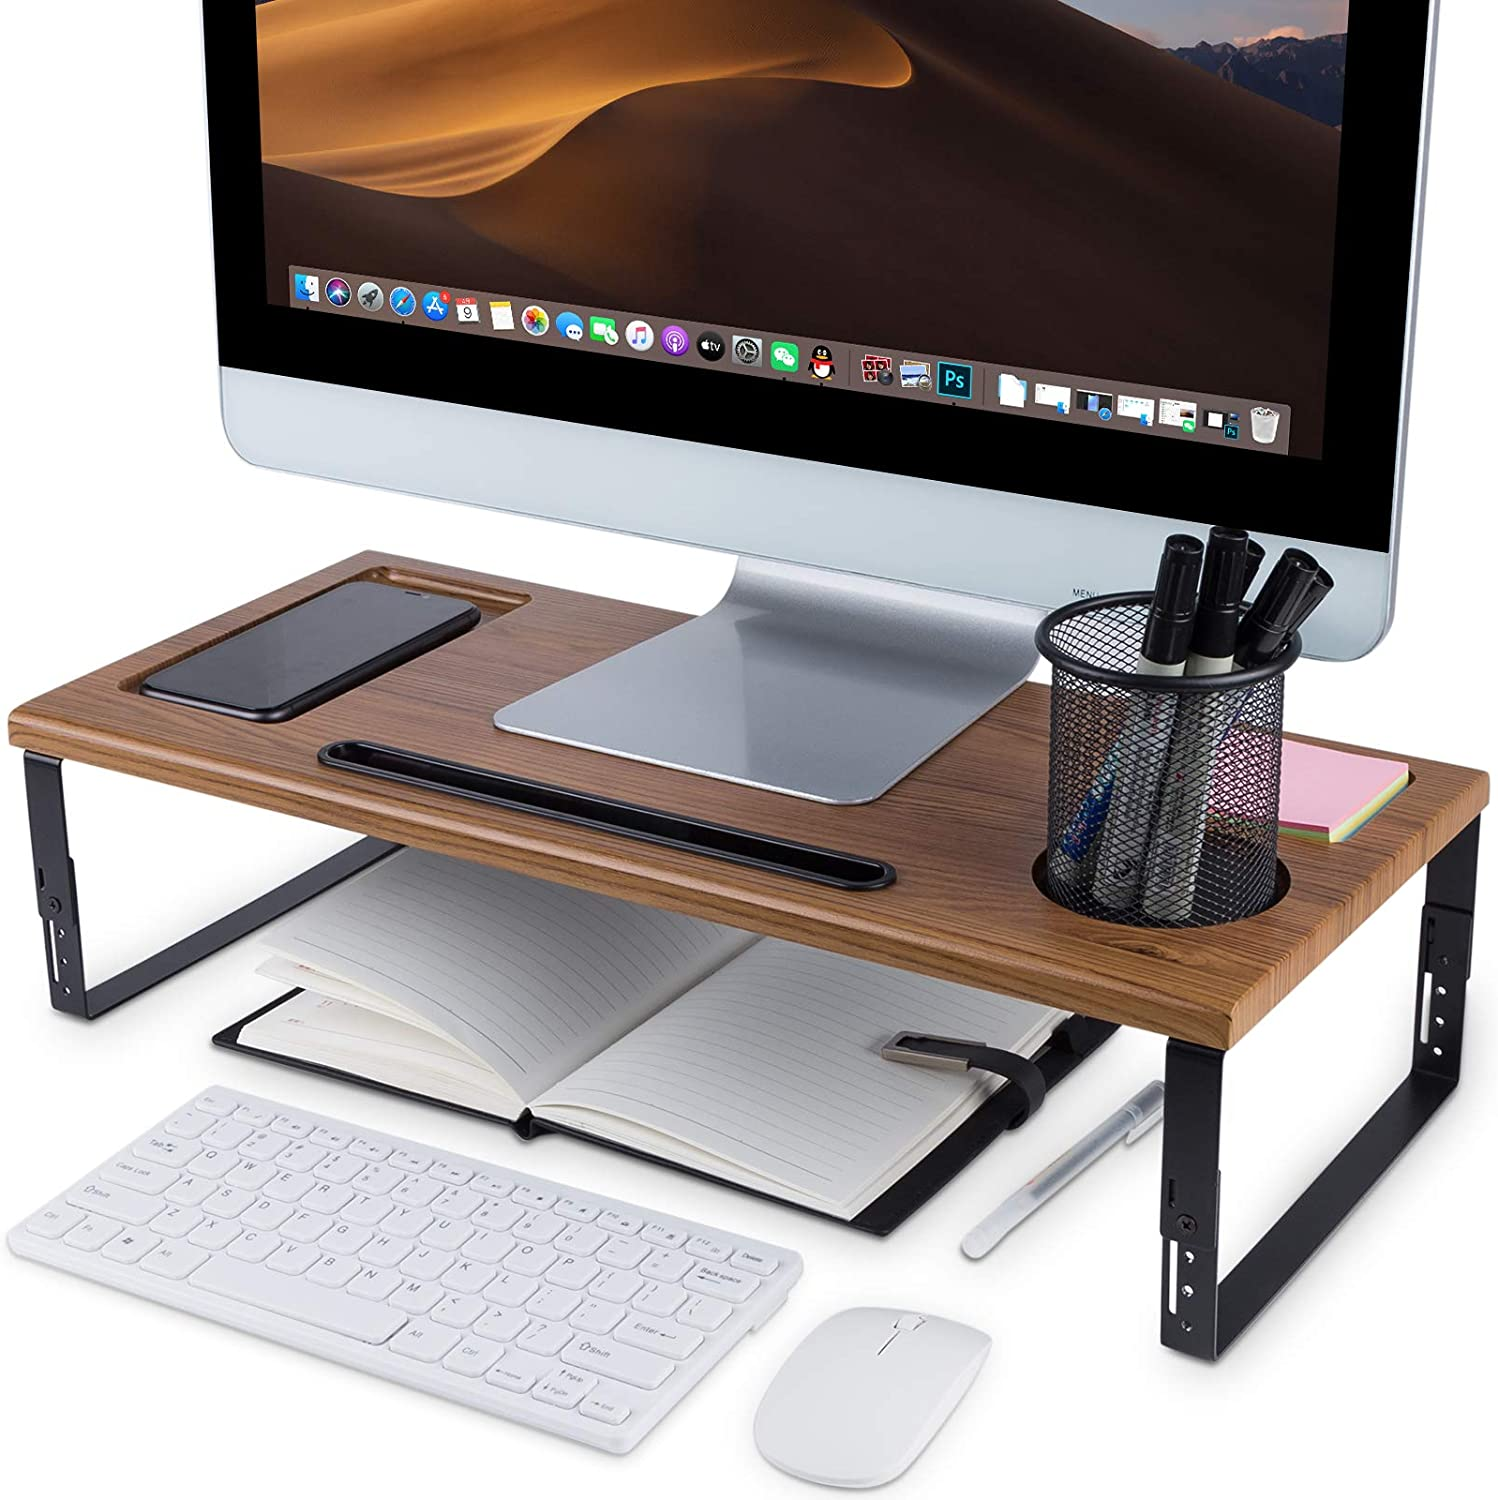 Kavalan Monitor Stand Riser Organizer, Height Adjustable Metal and Wood Desk Organizer with Phone Tablet Holder, Supports Heaviest Monitor, Printer, Laptop, Computer Screen, Wood Color